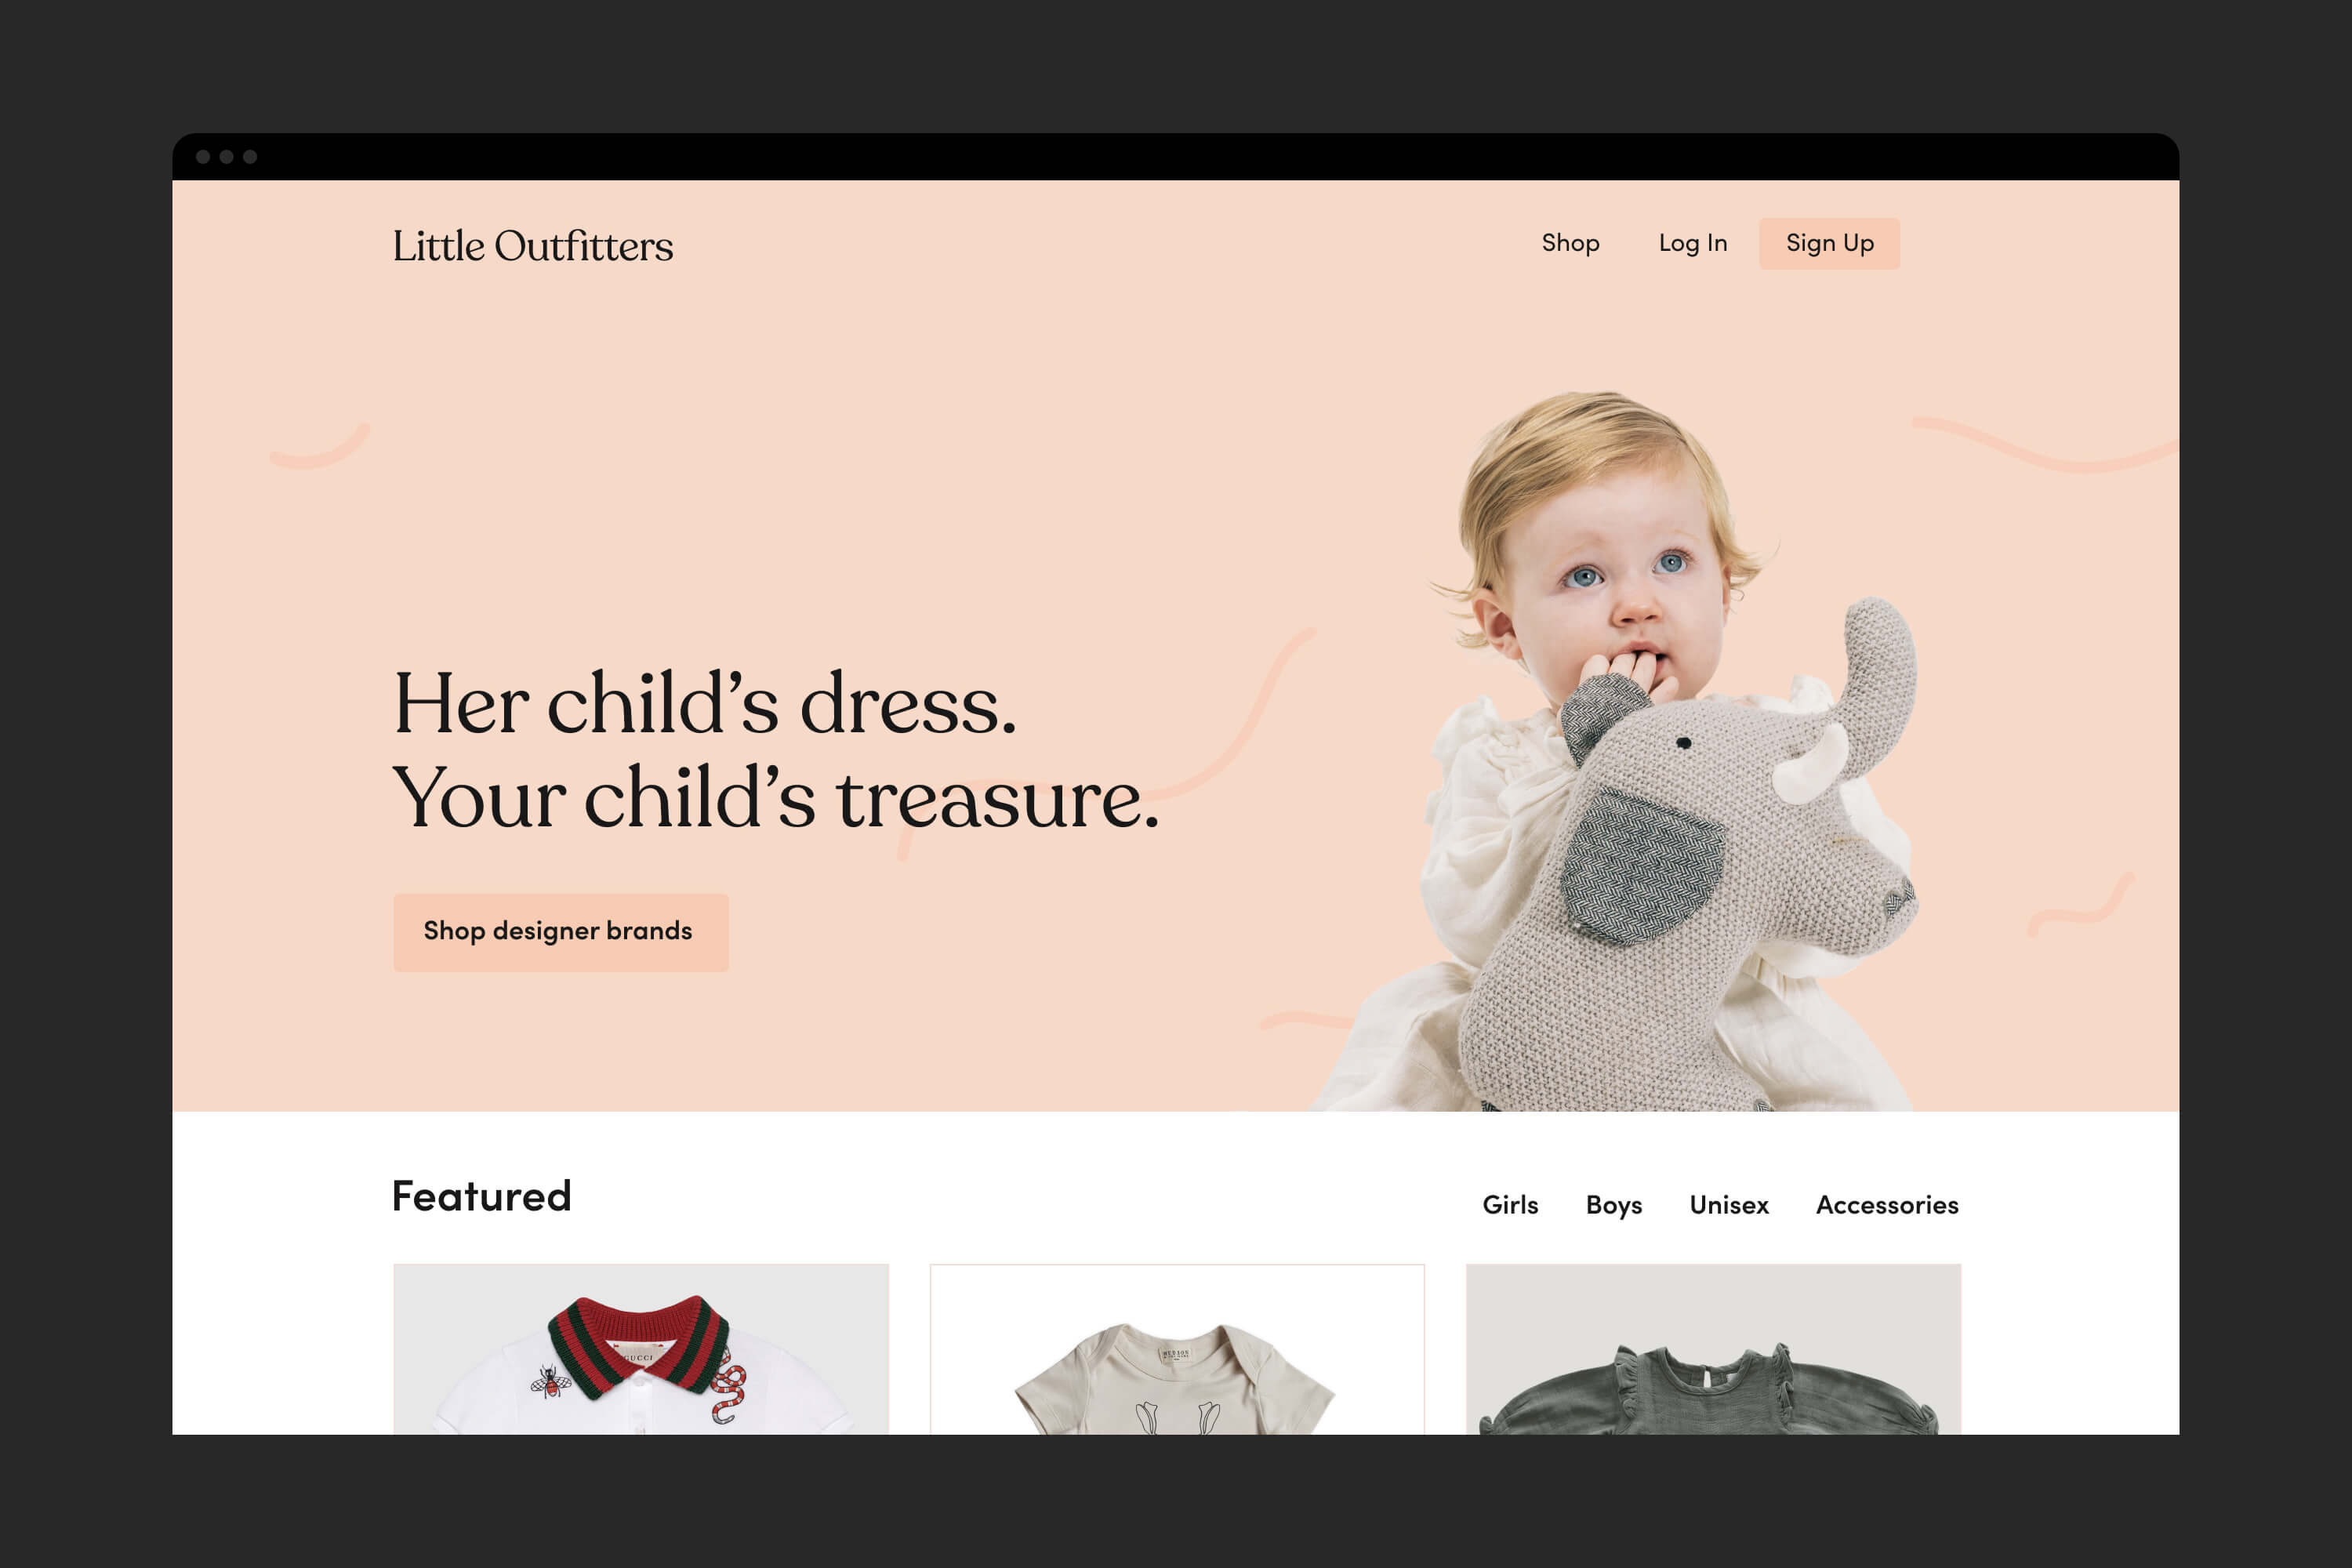 Little Outfitters - Alex Murton